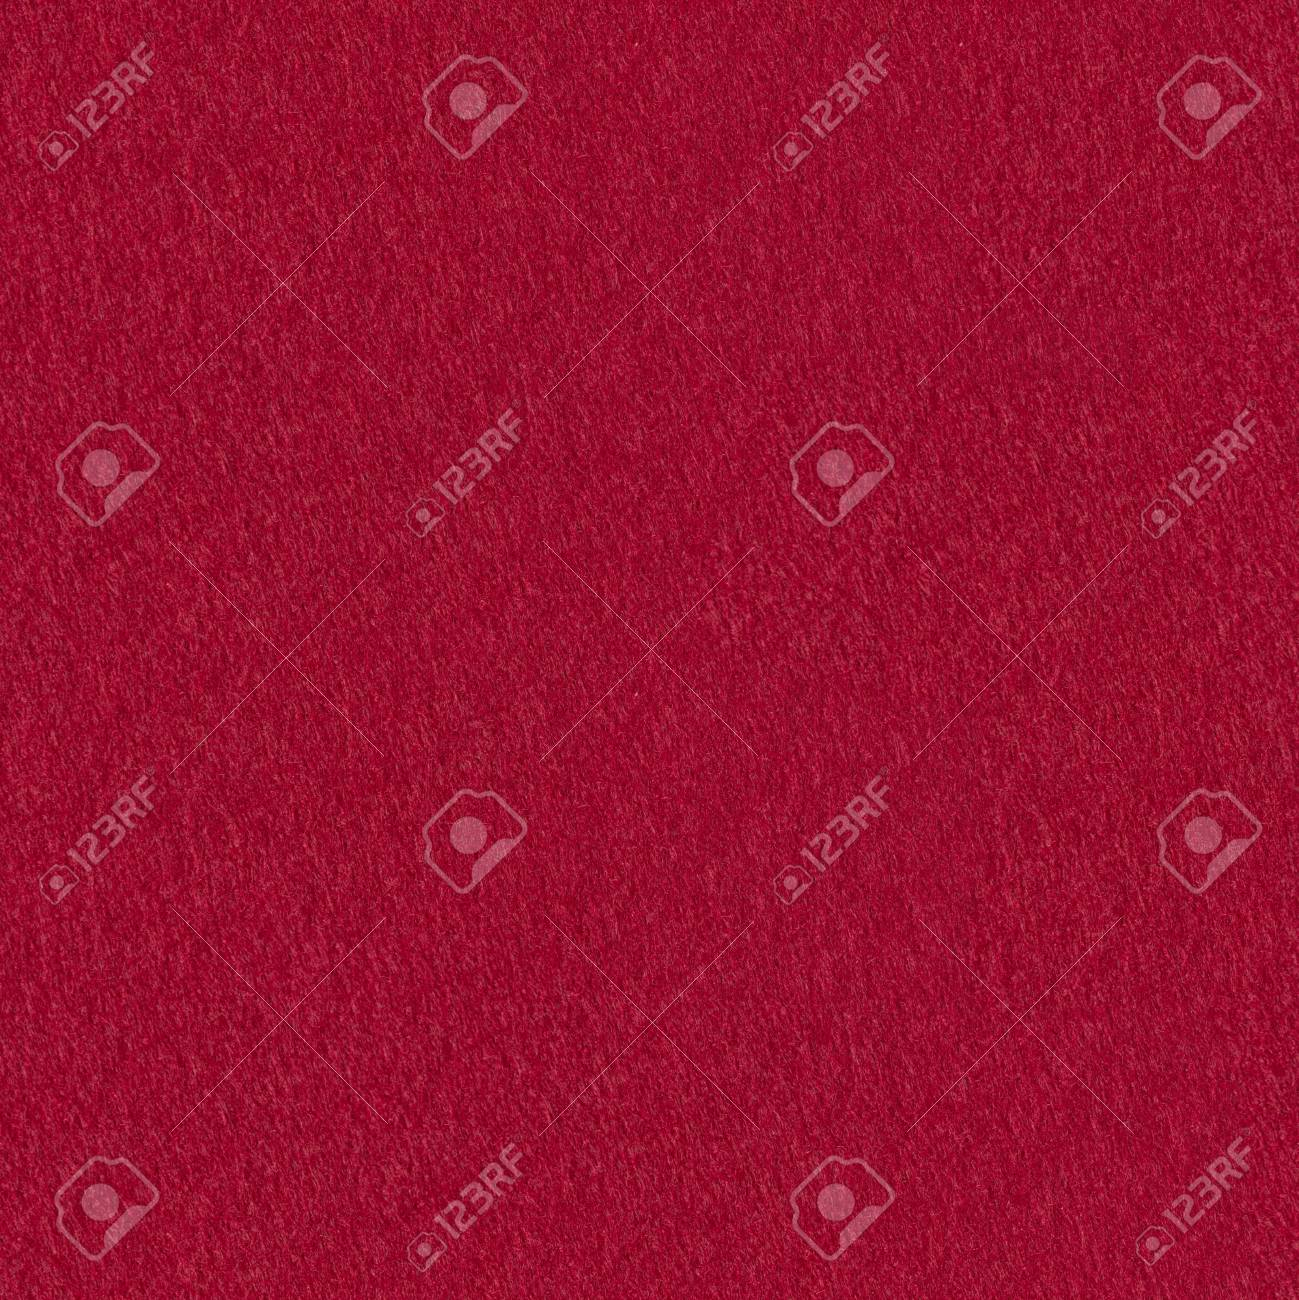 Red Grunge Felt Useful For Christmas Background Seamless Square